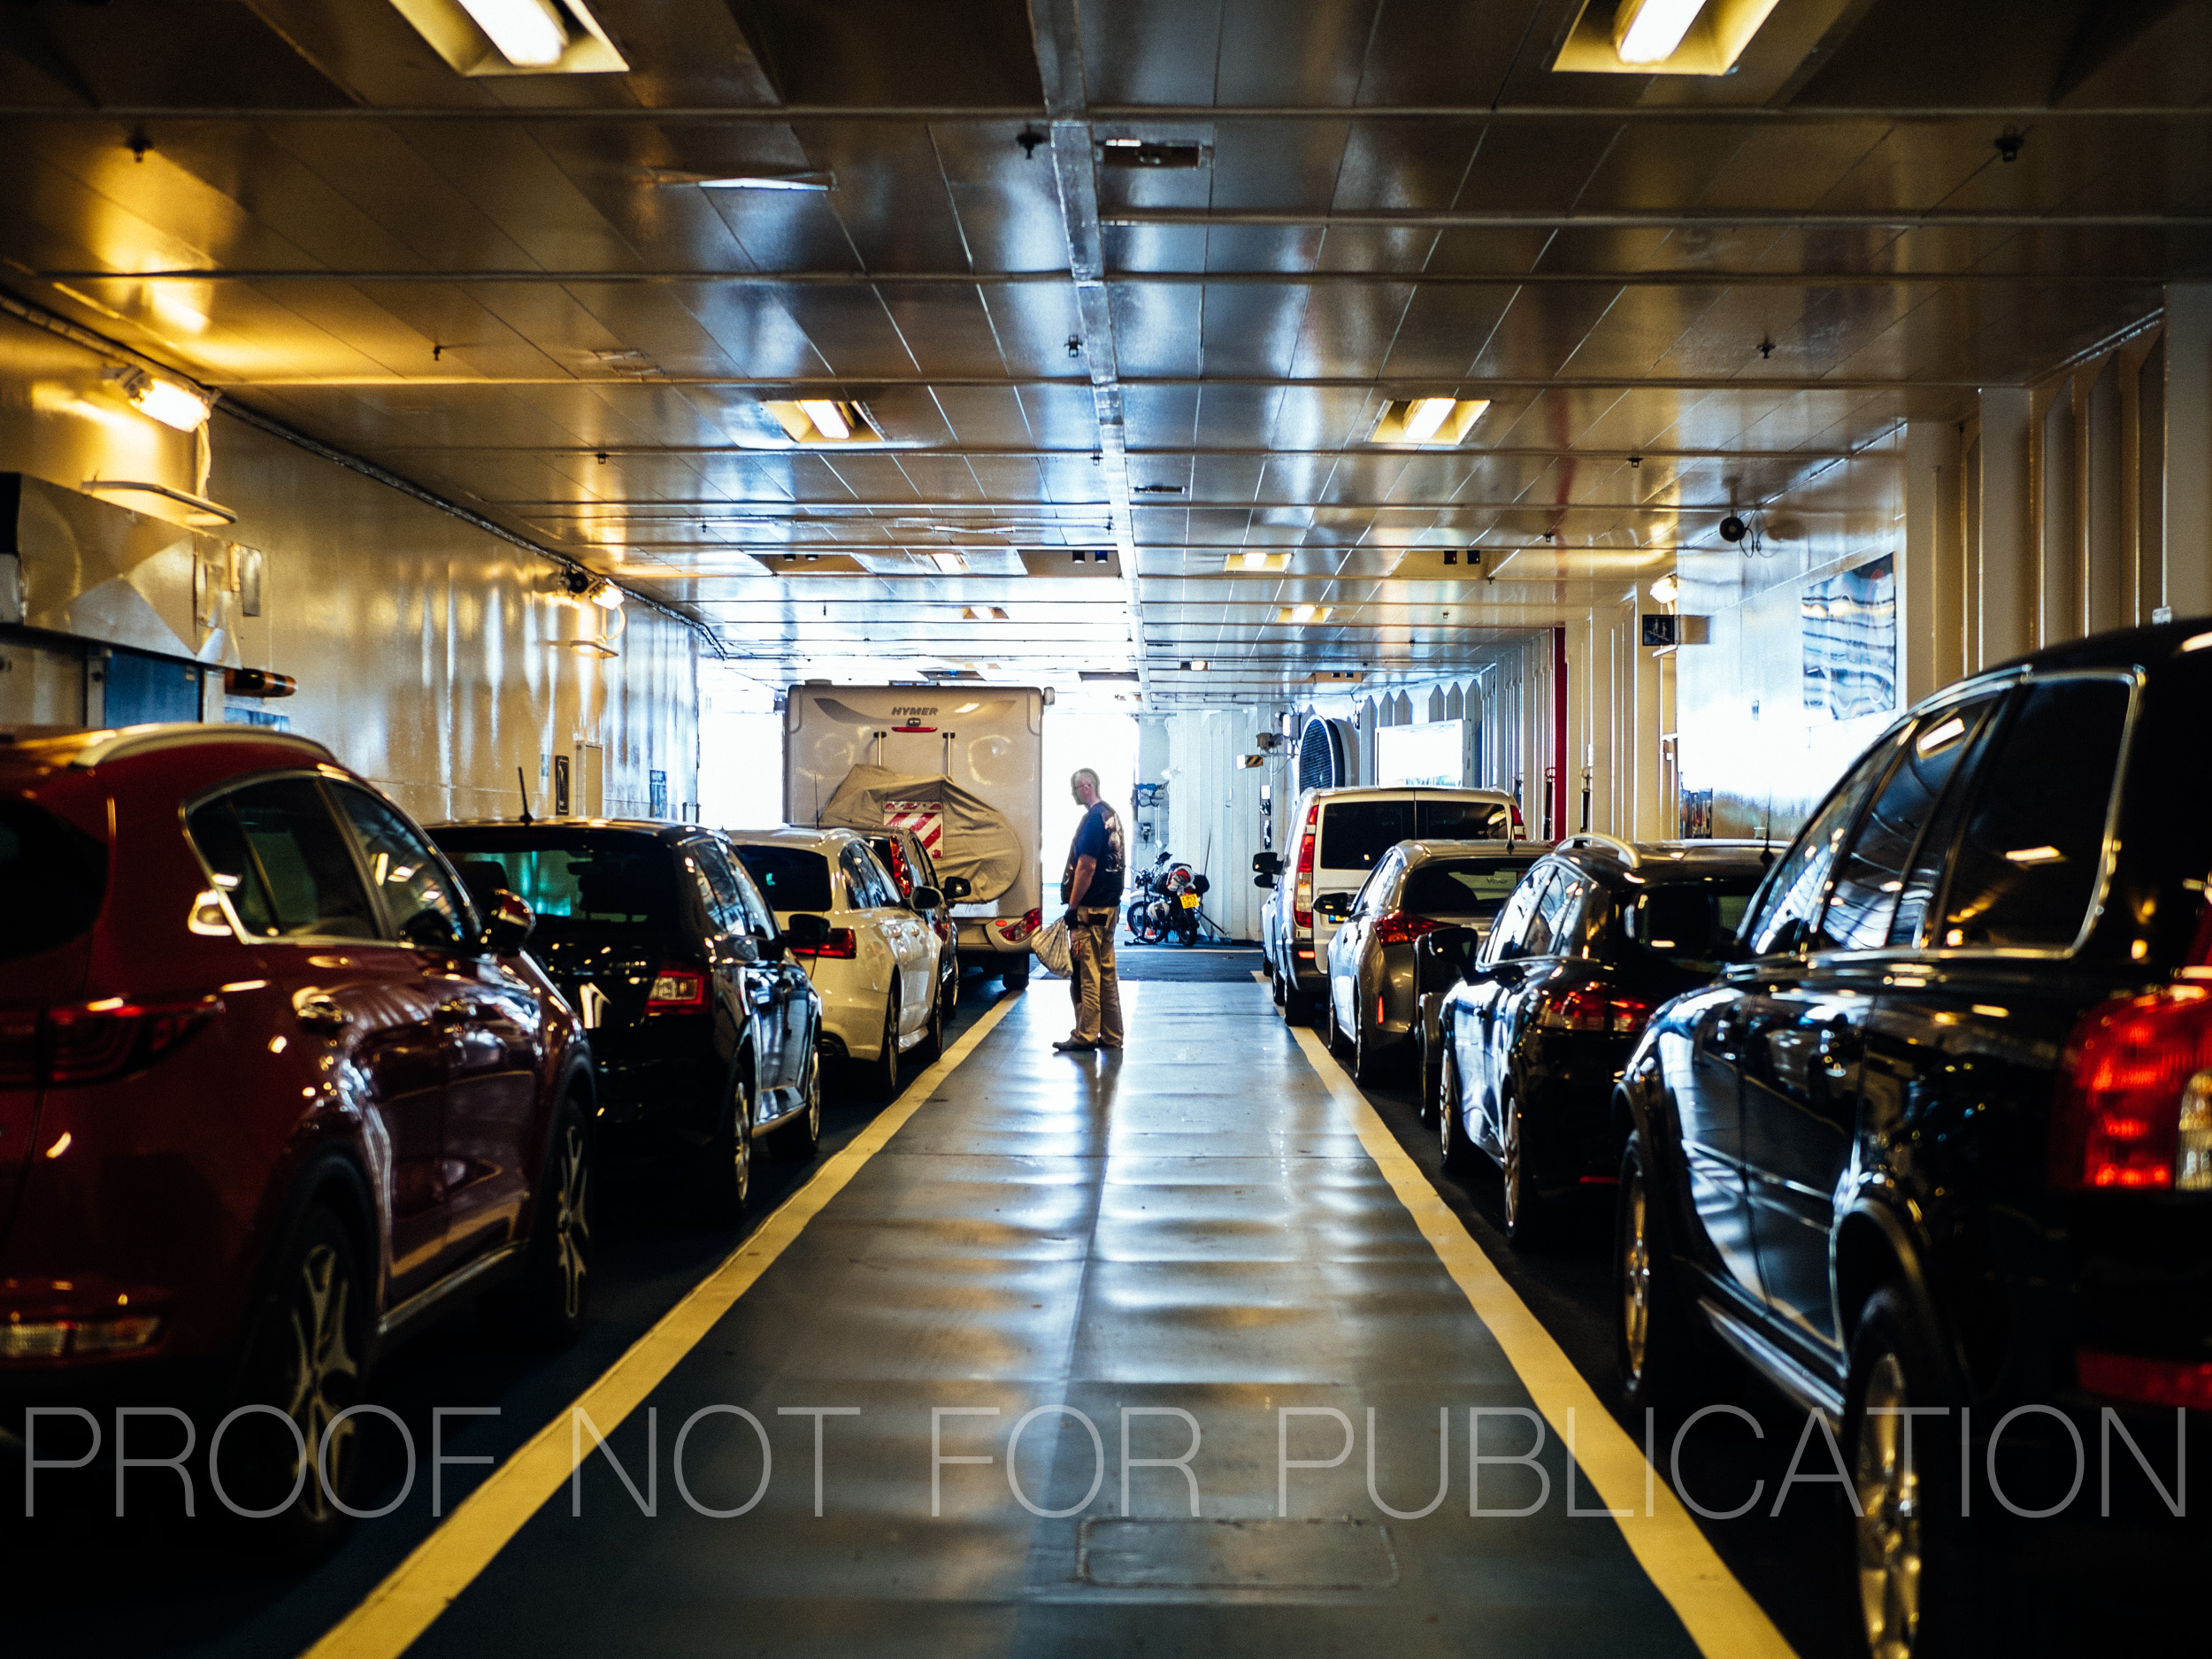 Ferry from Germany to Denmark, loading bay level.